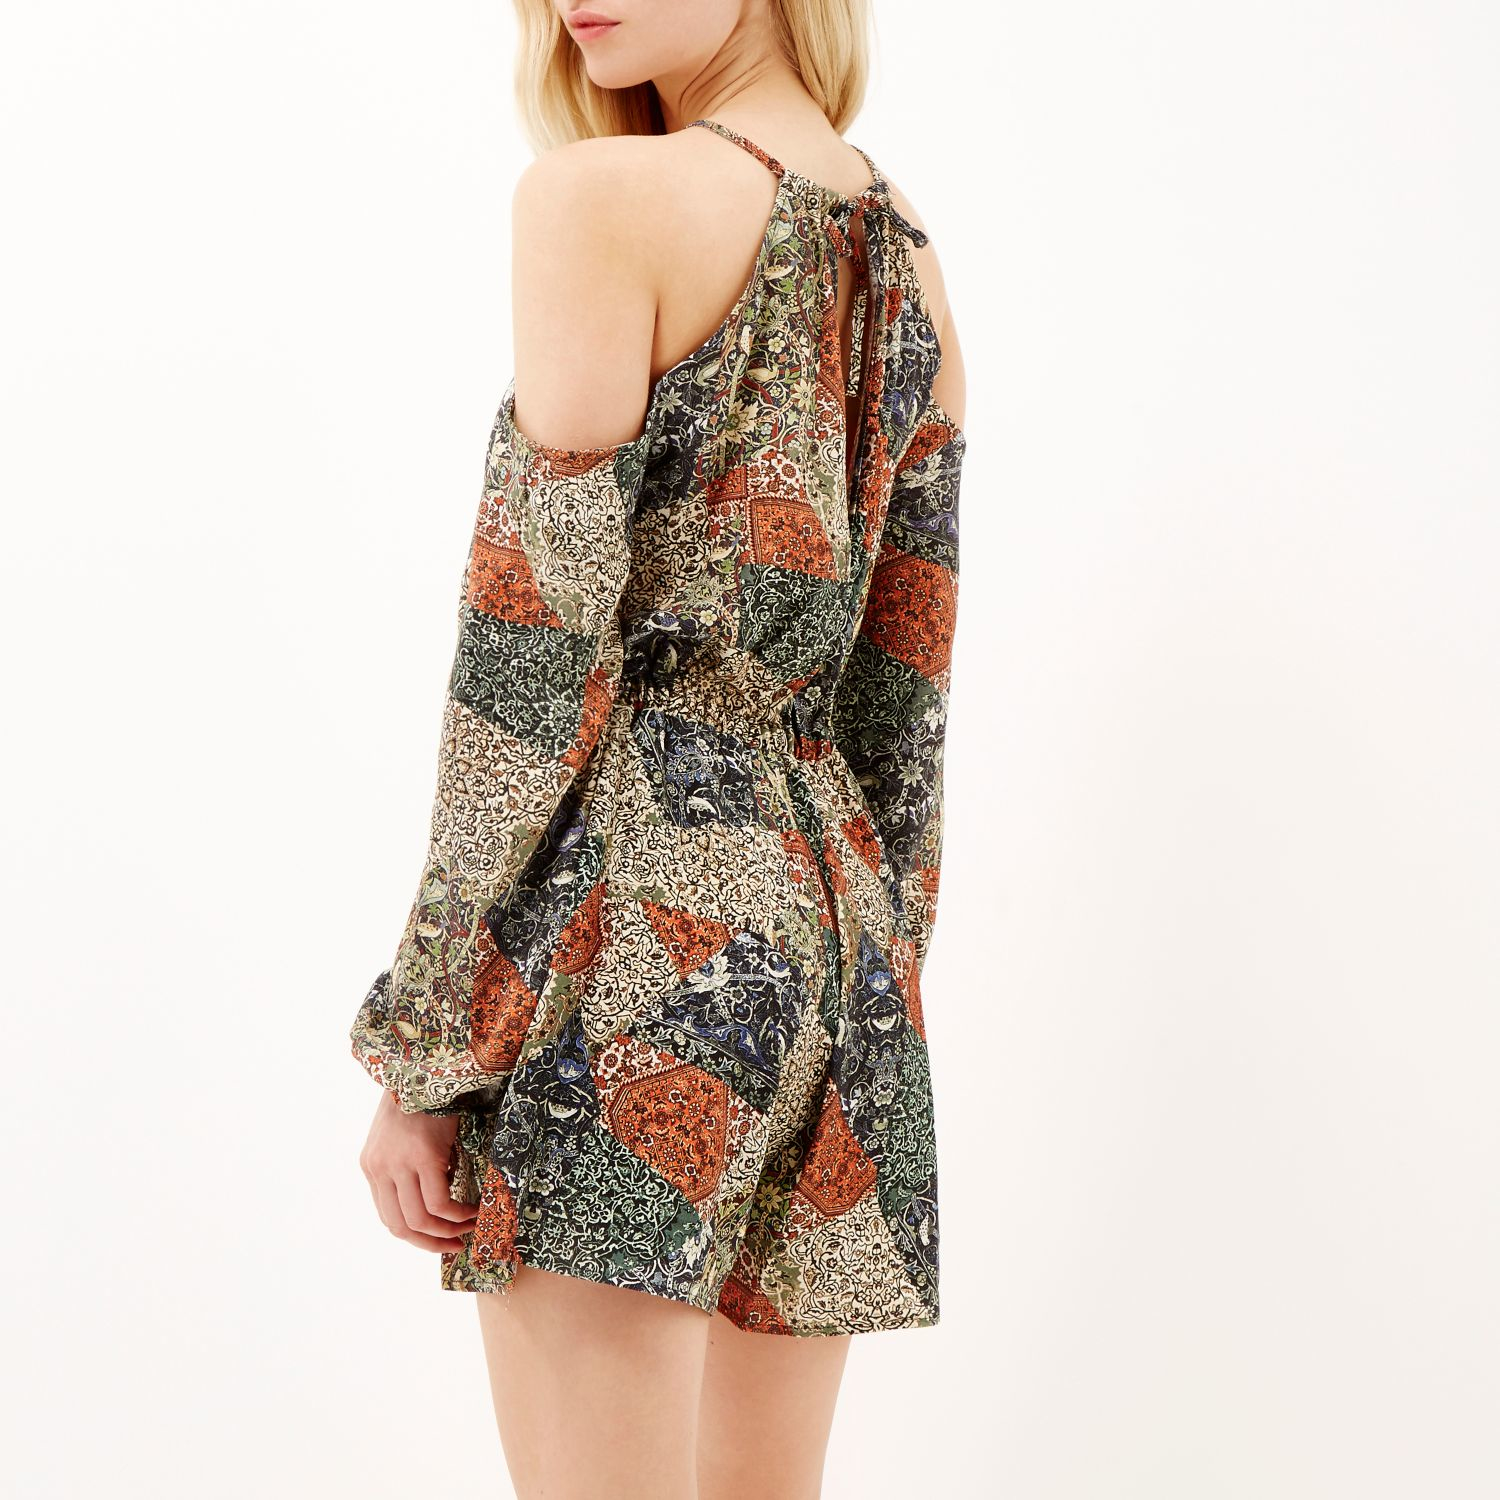 0c21517b70 River Island Green Paisley Print Cold Shoulder Playsuit in Green - Lyst